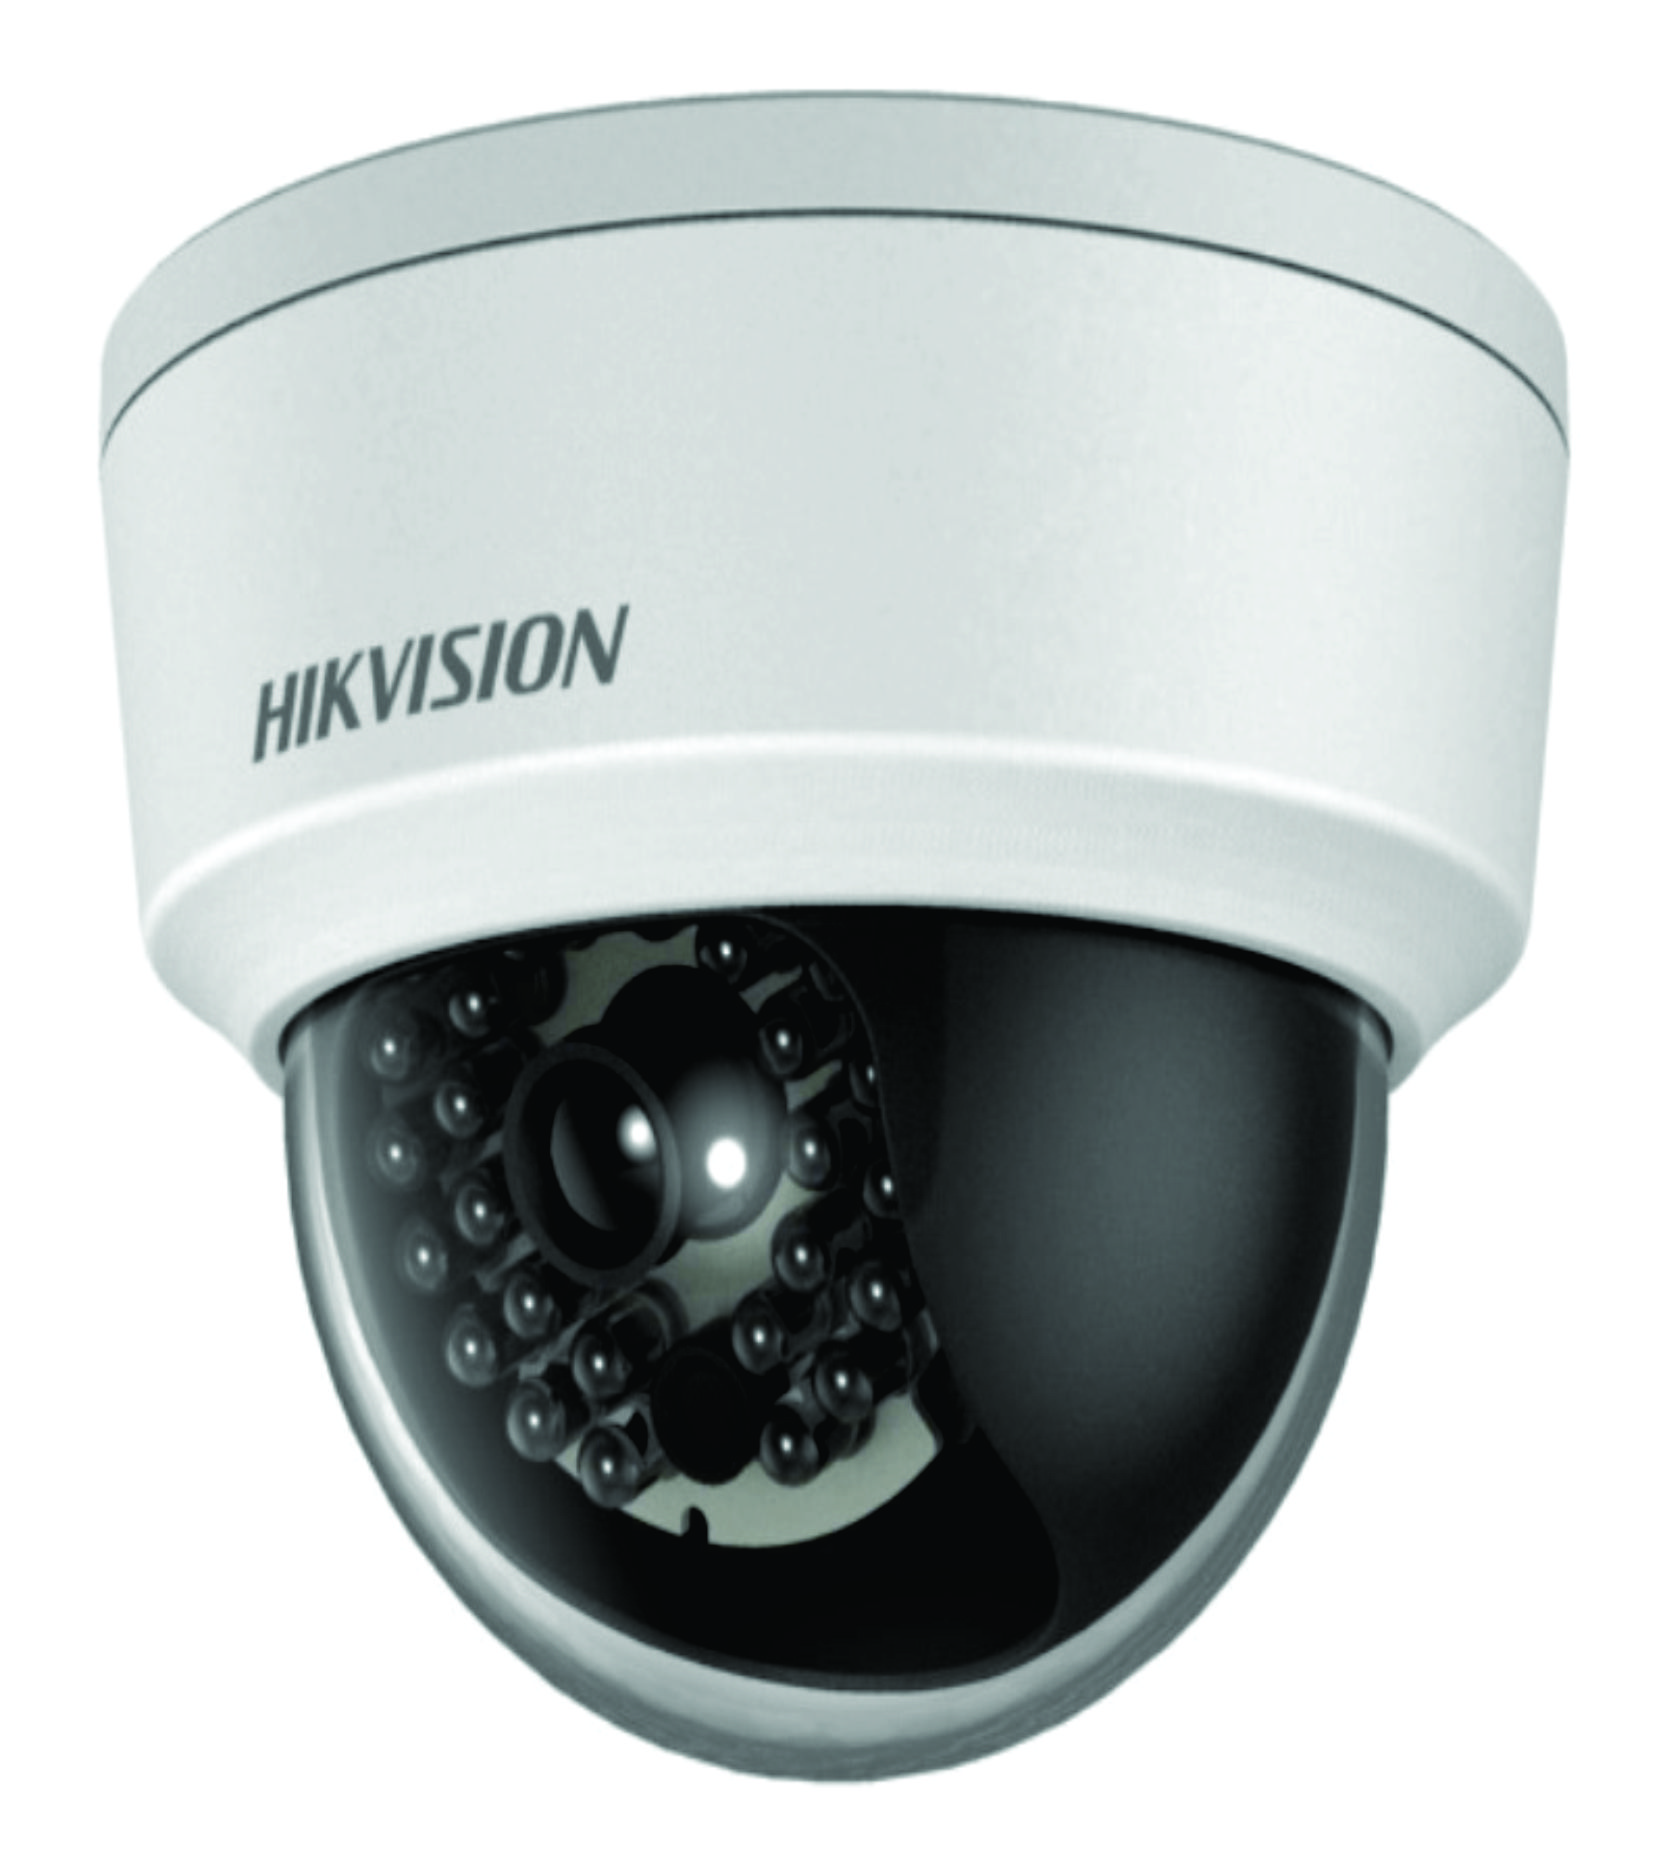 Camera IP Dome hồng ngoại không dây 2.0 Megapixel HIKVISION DS-2CD2120F-IW